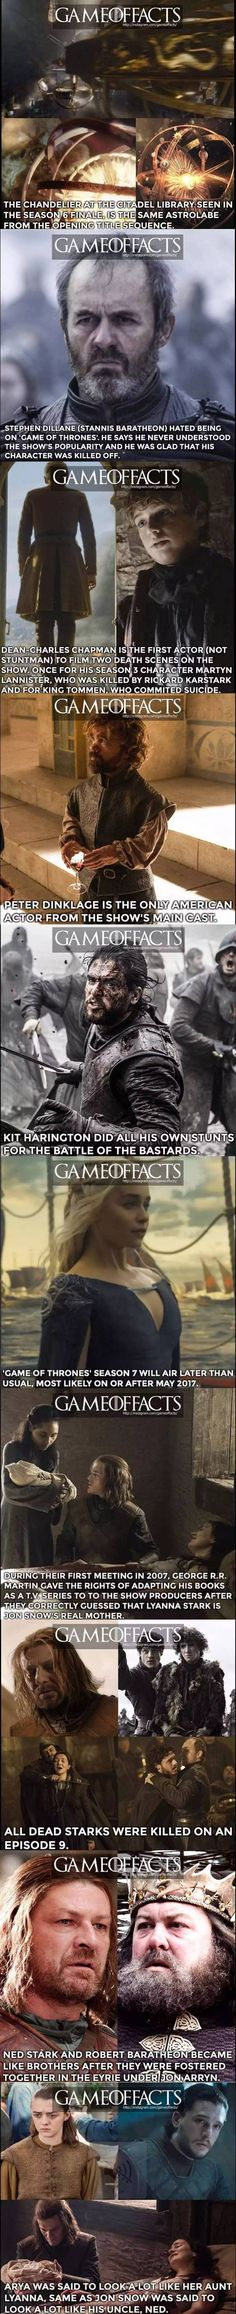 Game of thrones facts 5th and final part